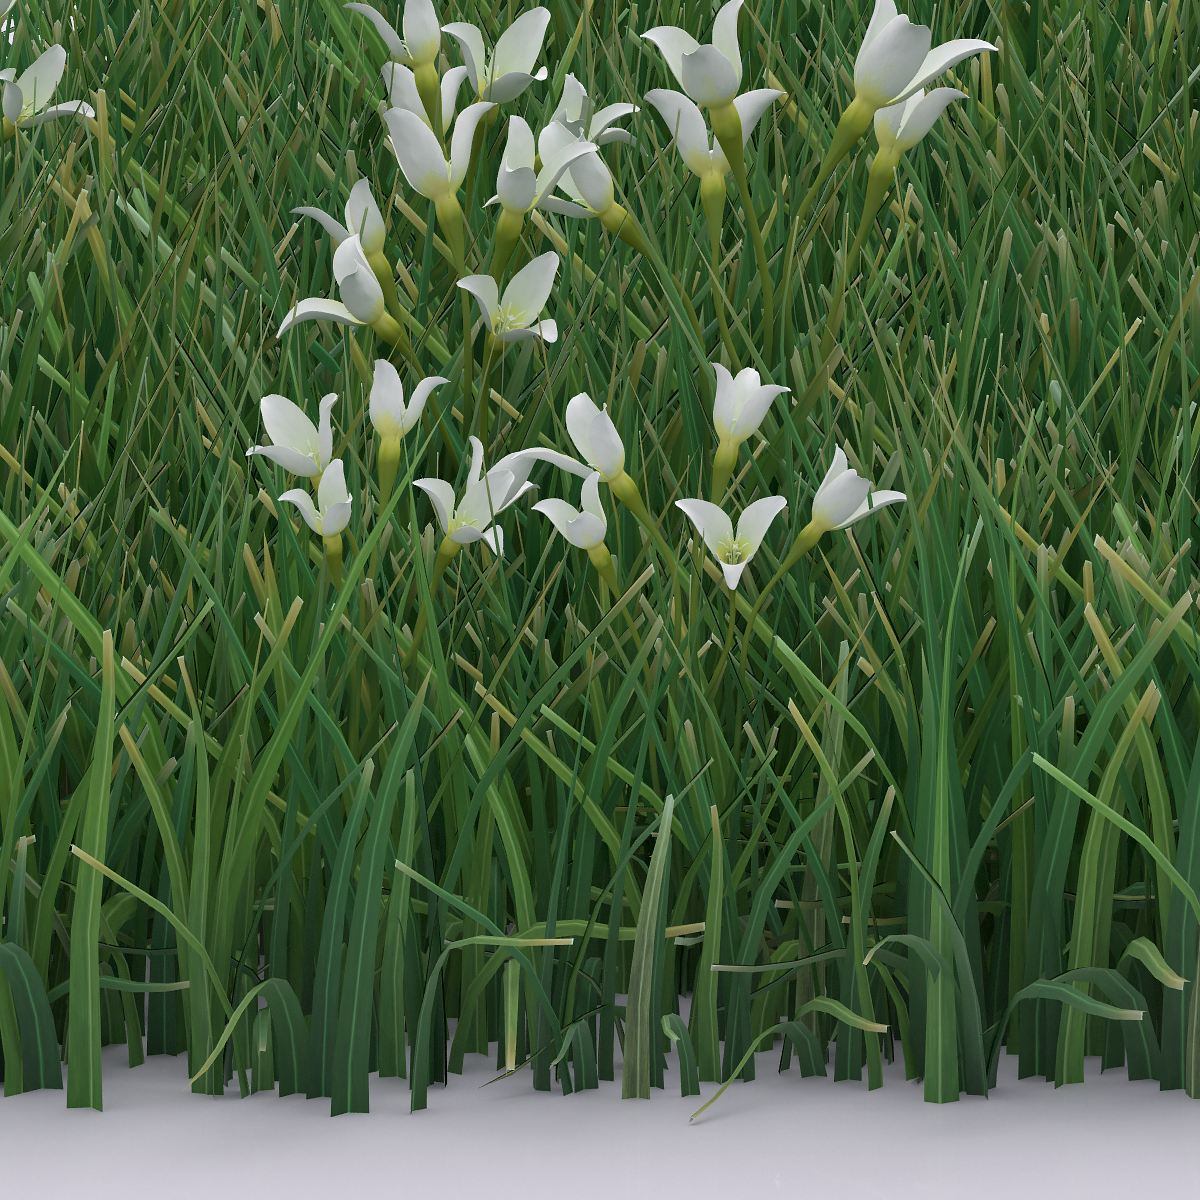 Detail Virtual Flowers and Grass 005 - 2018 - Virtual Flowers and Grass